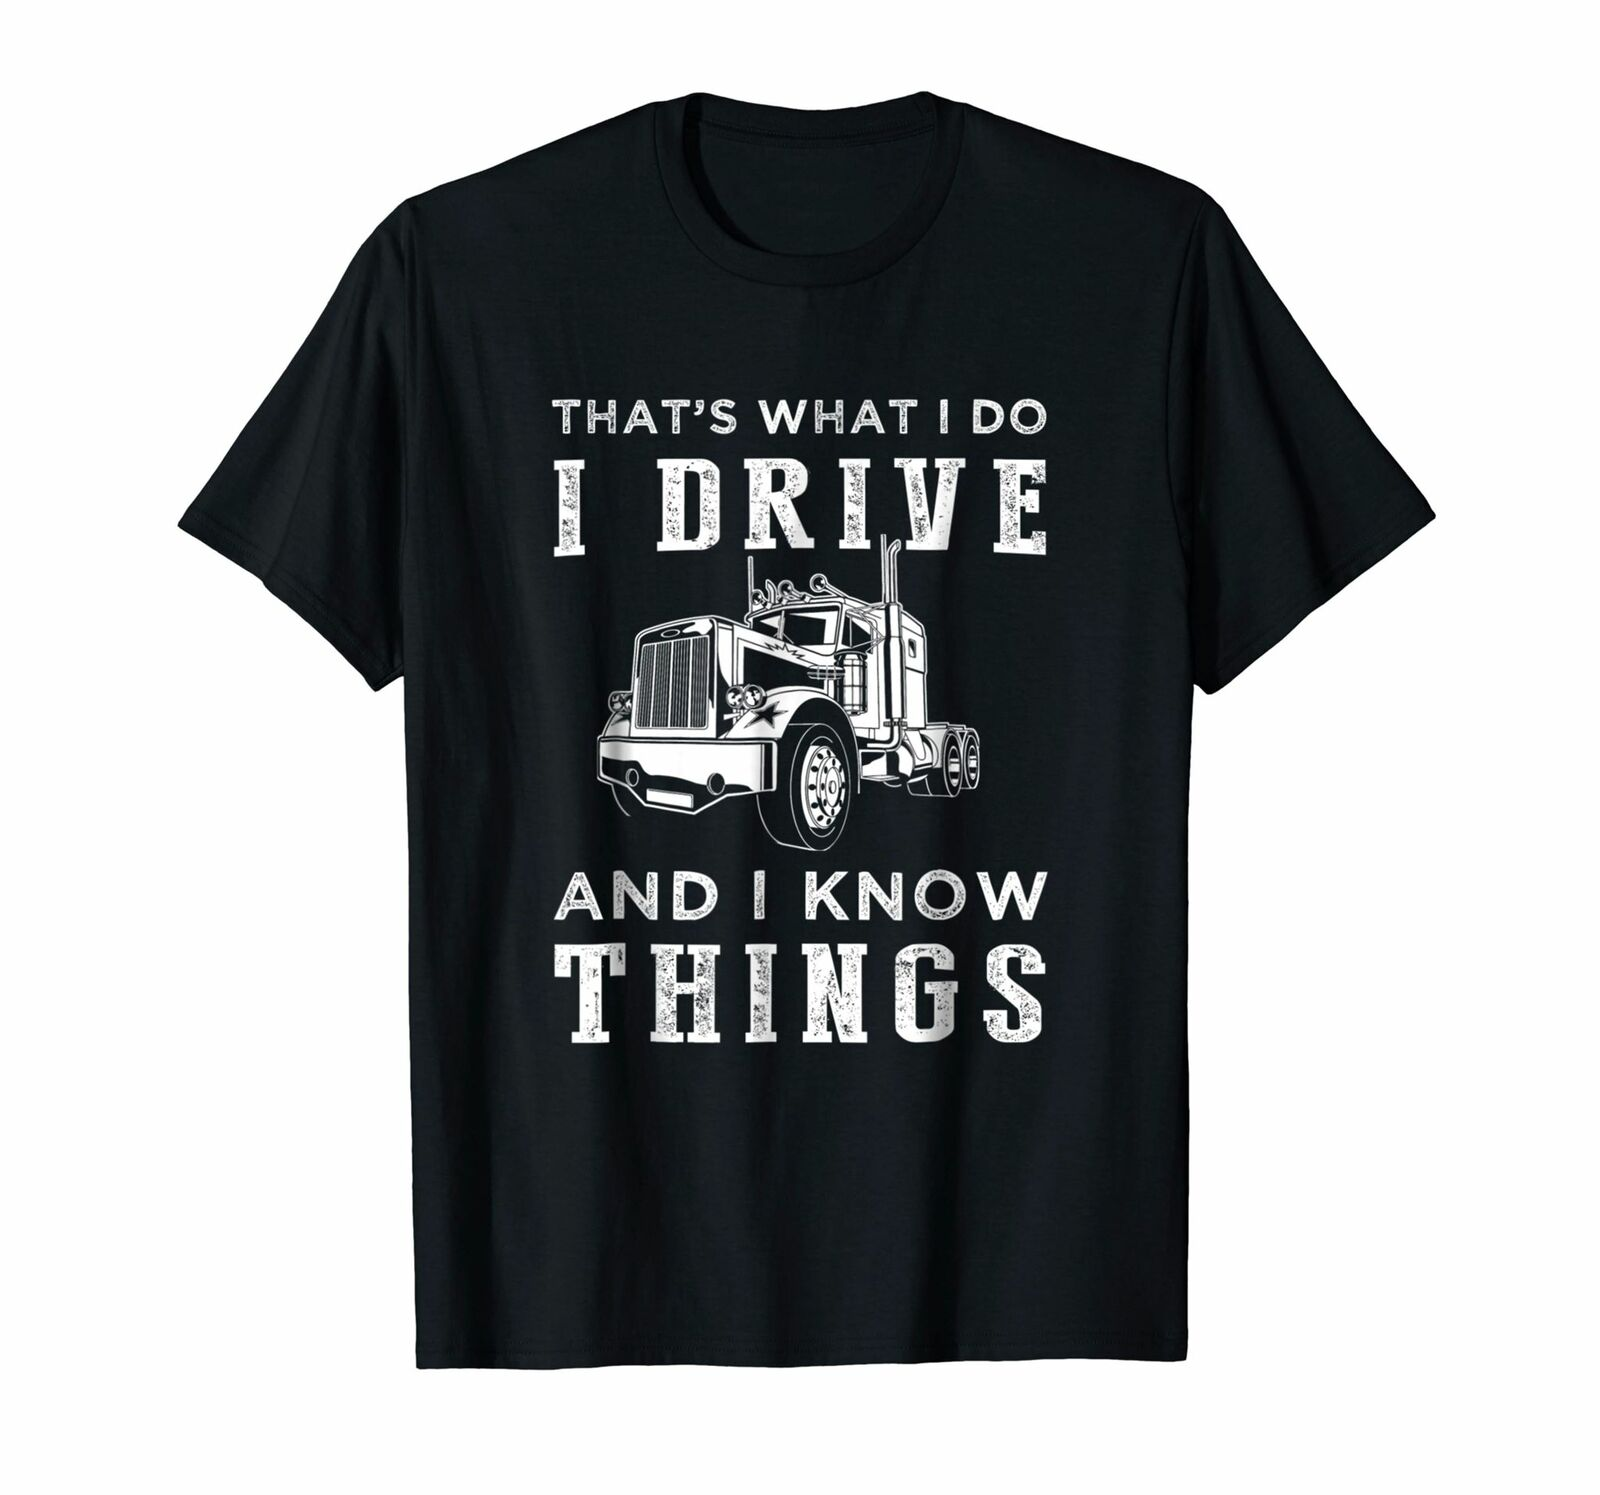 That's What I Do I Drive Truck and I Know Things Tshirt Men's Cool Short Sleeve Crew Neck Tees image